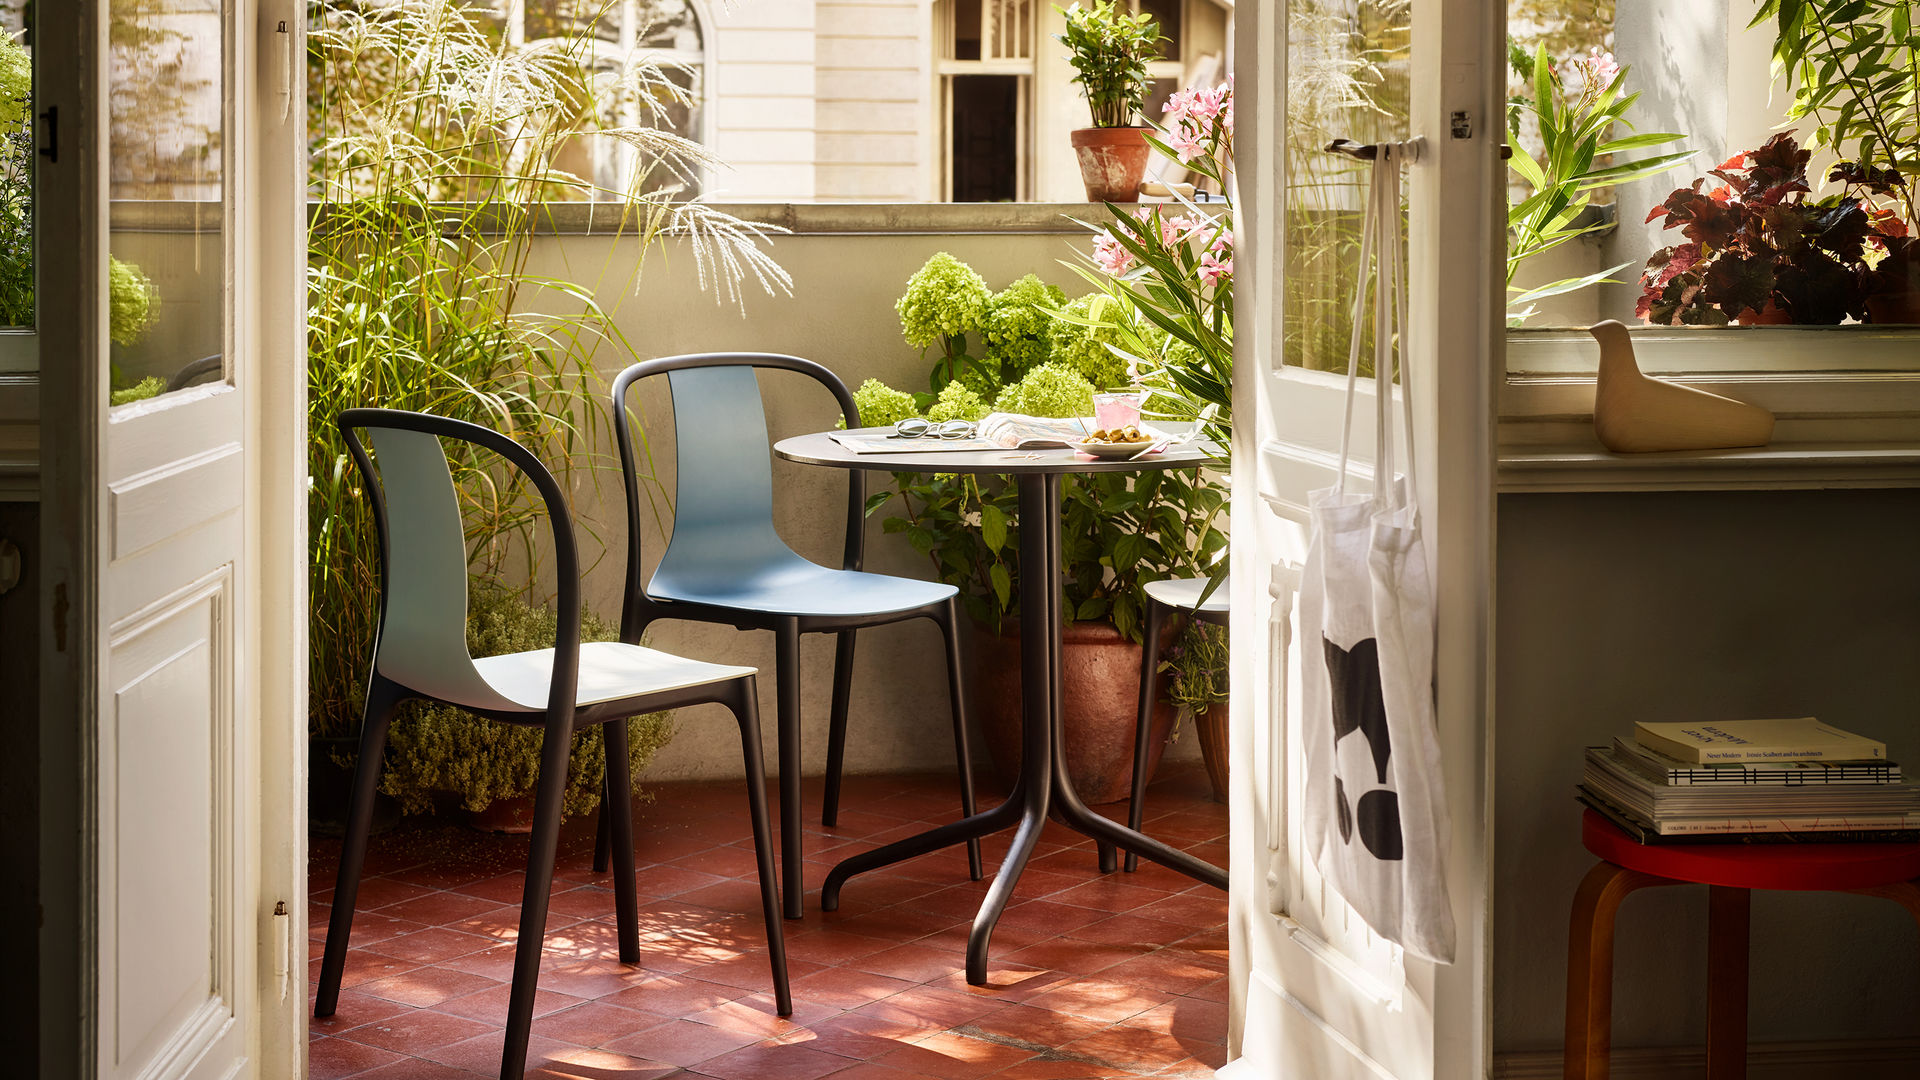 Belleville Chair Belleville Table outdoor_web_16-9